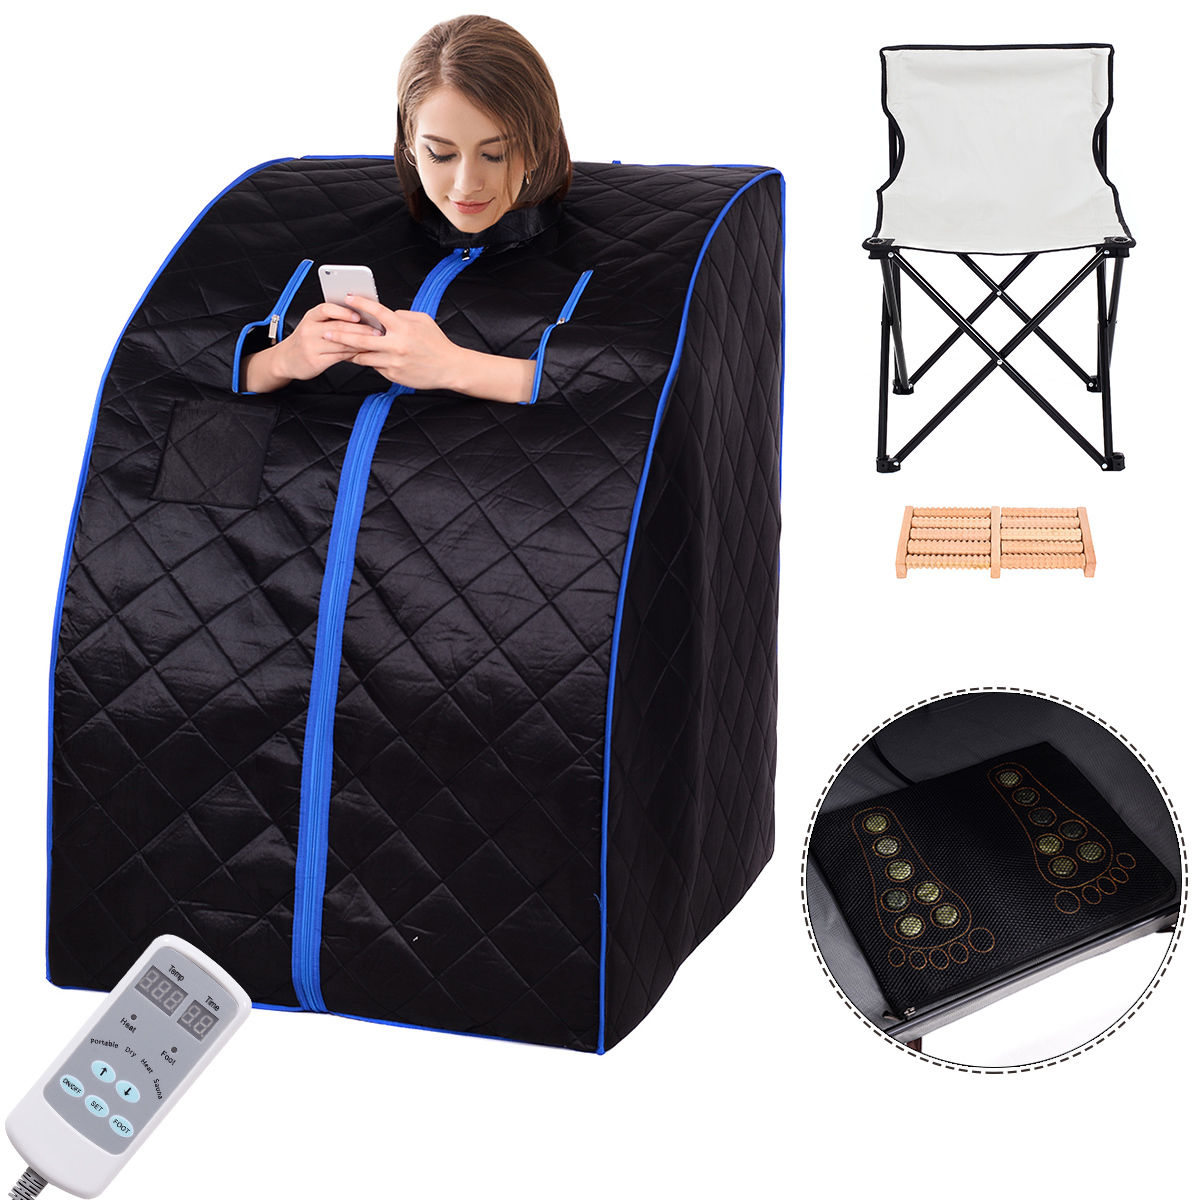 Costway Portable Far Infrared Sauna Spa Full Body Slimming Loss Weight Detox Therapy by Costway